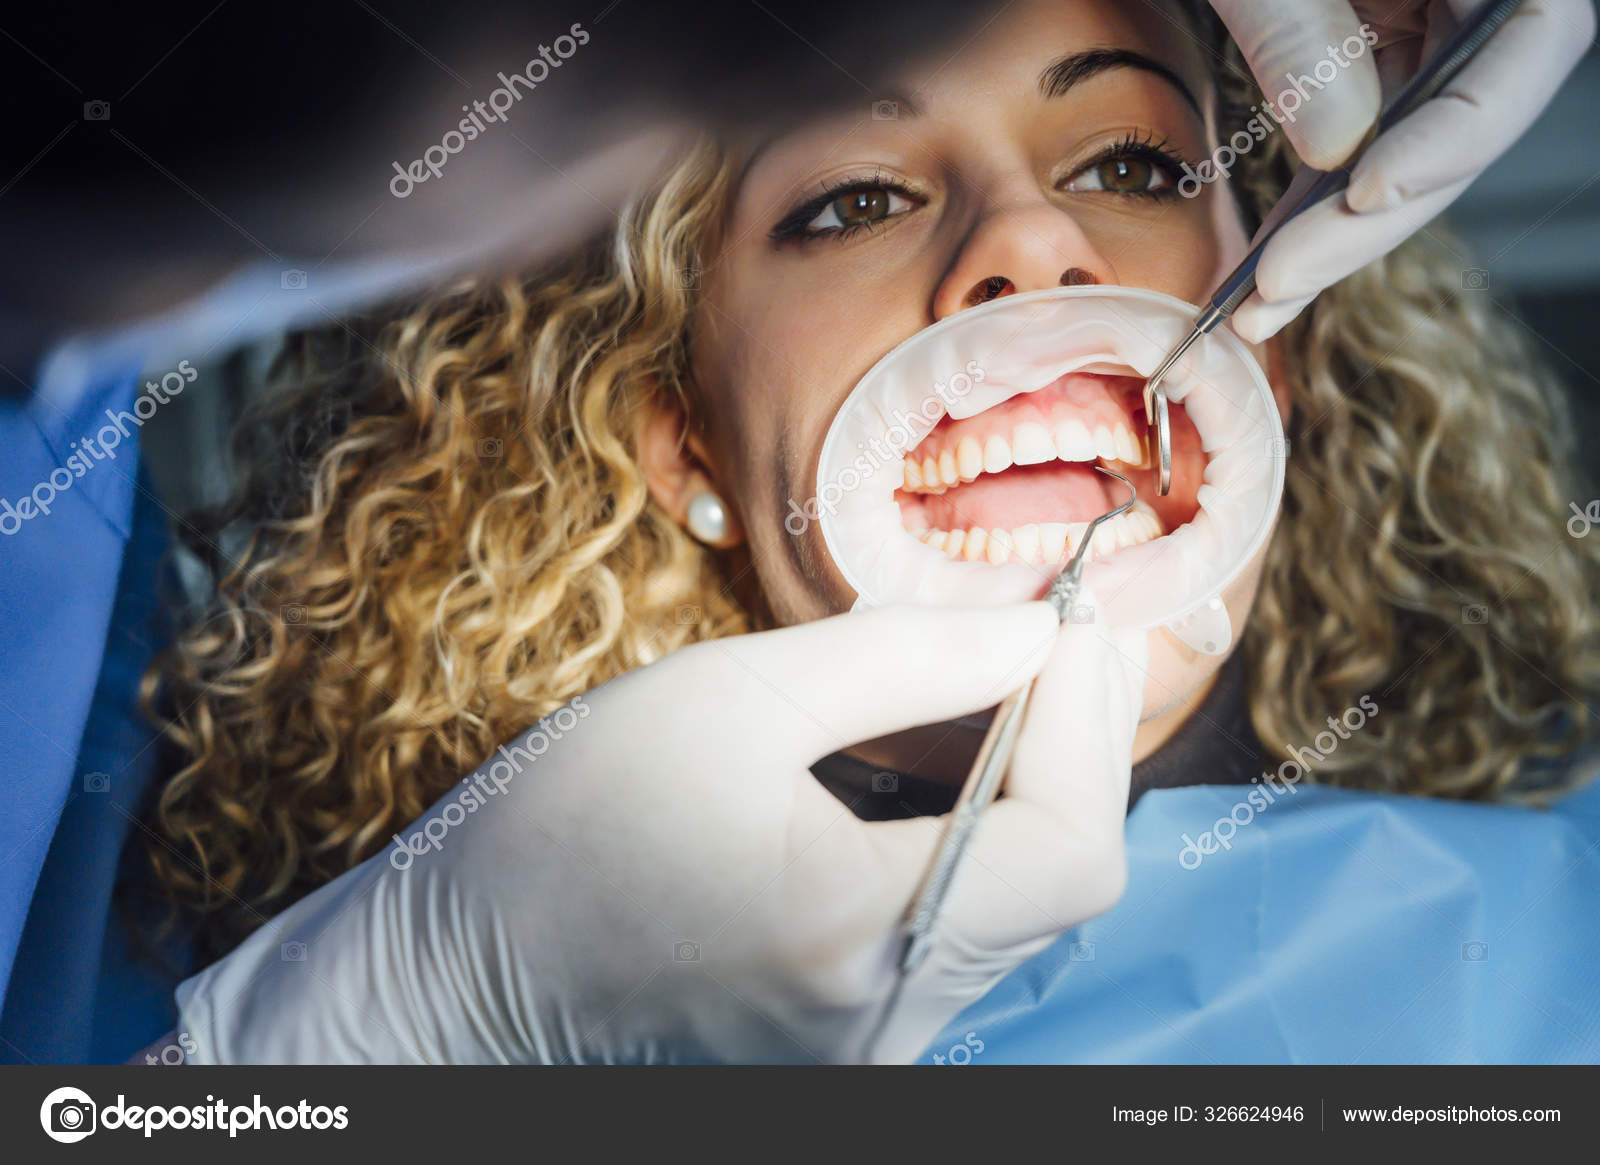 Dentist working in his office with a patient.